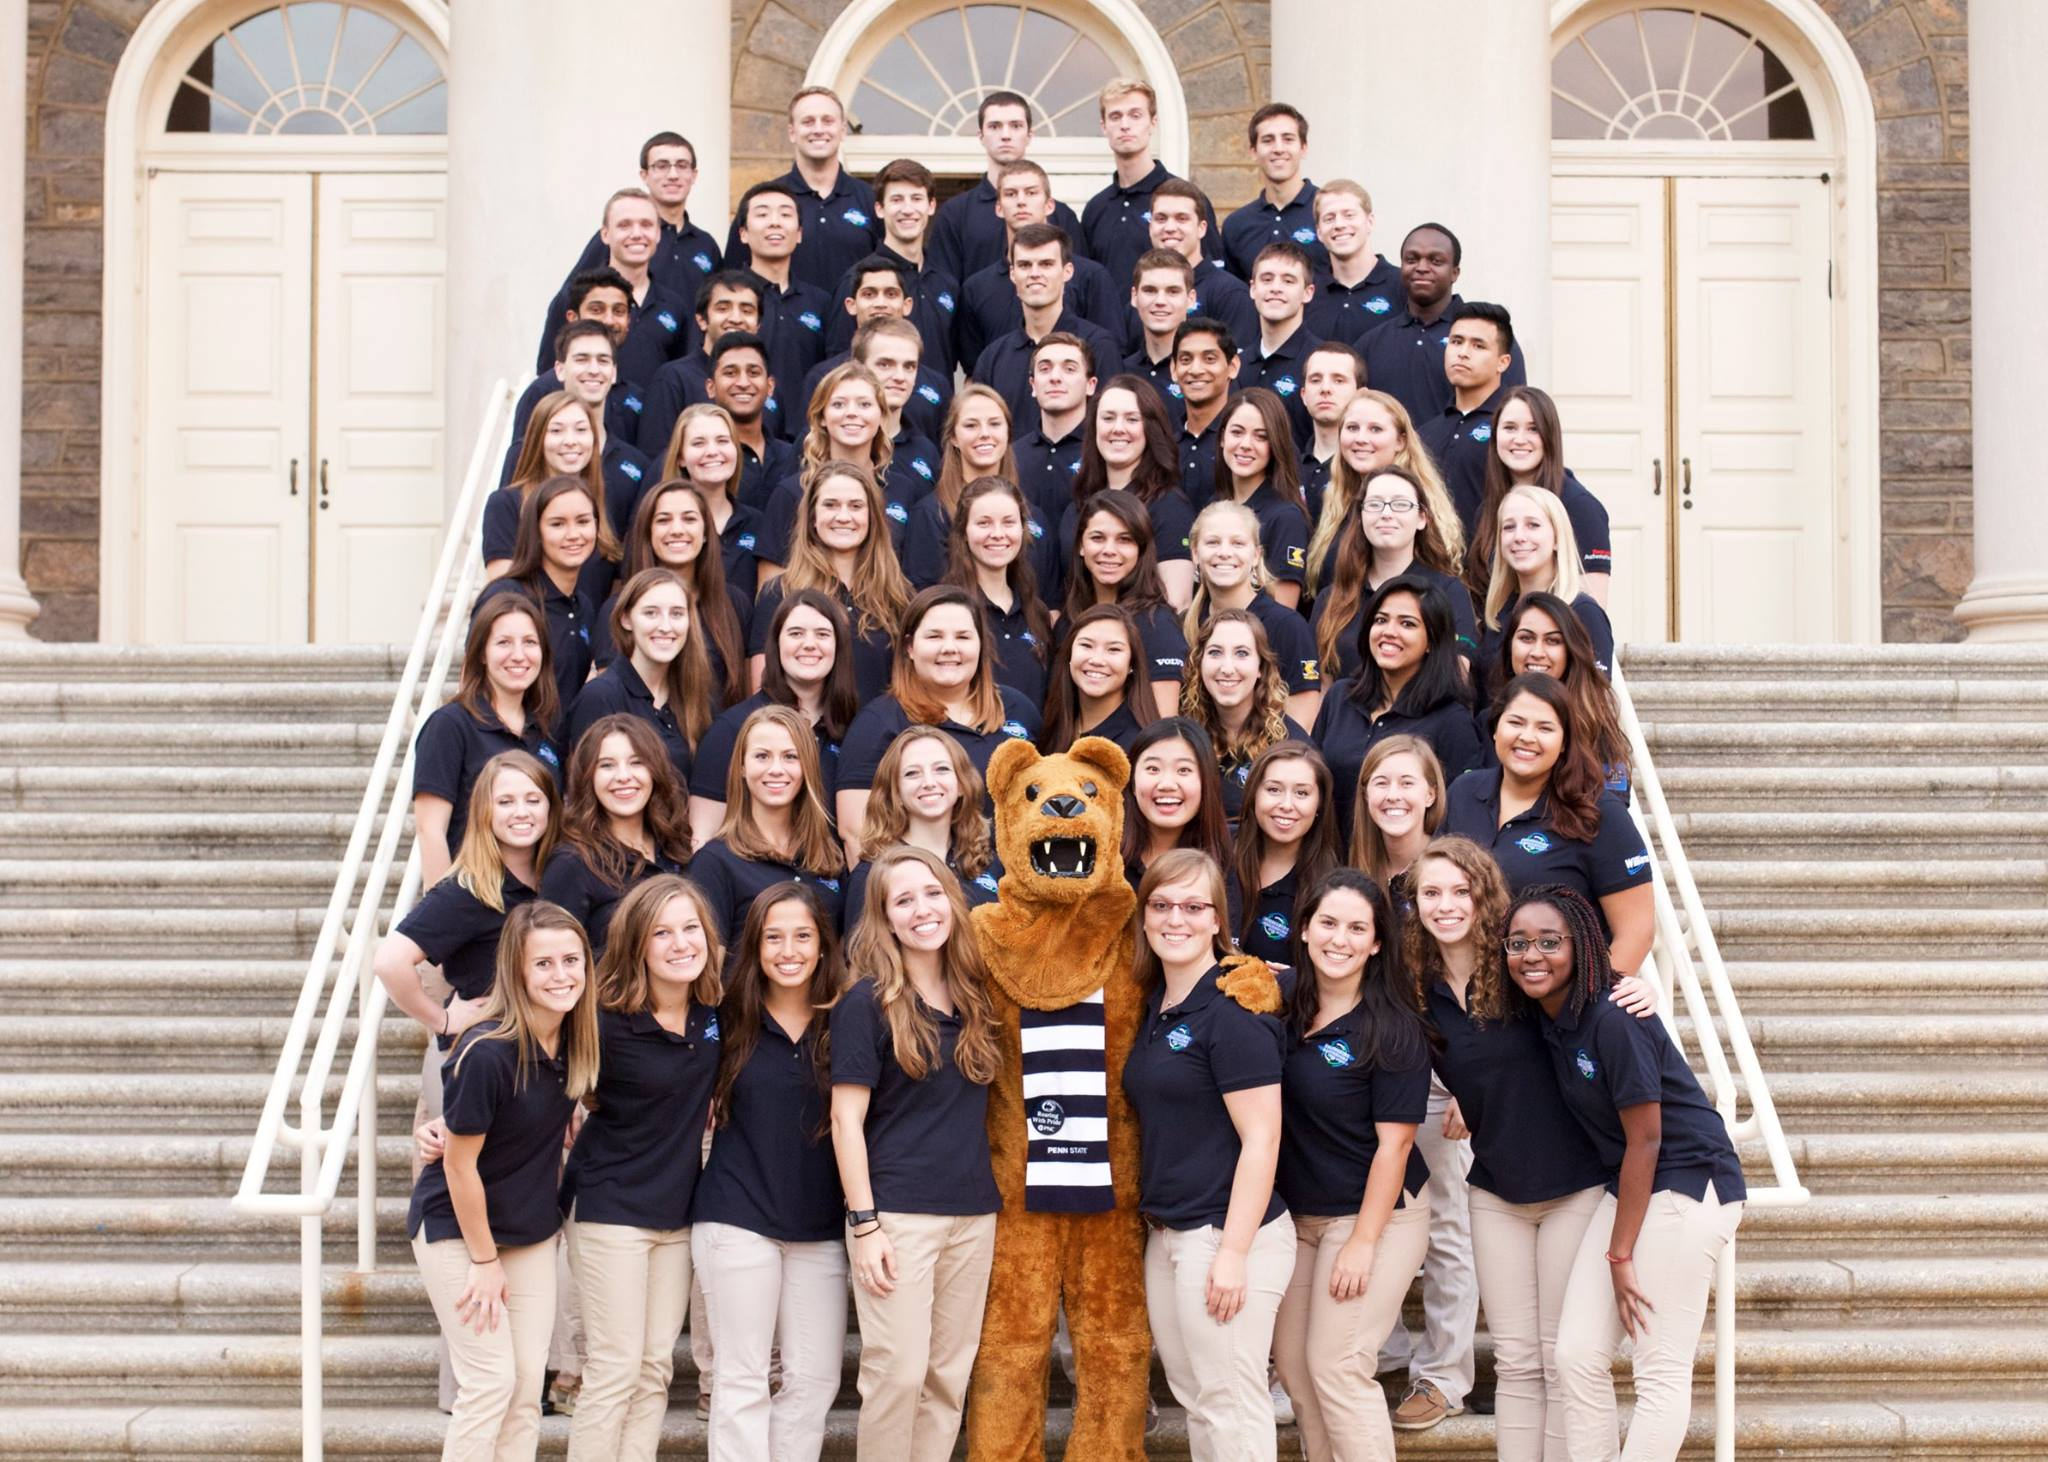 penn state personal statement This is the question i got: please tell us something about yourself, your experiences, or activities that you believe would reflect positively on your ability to succeed at penn state.